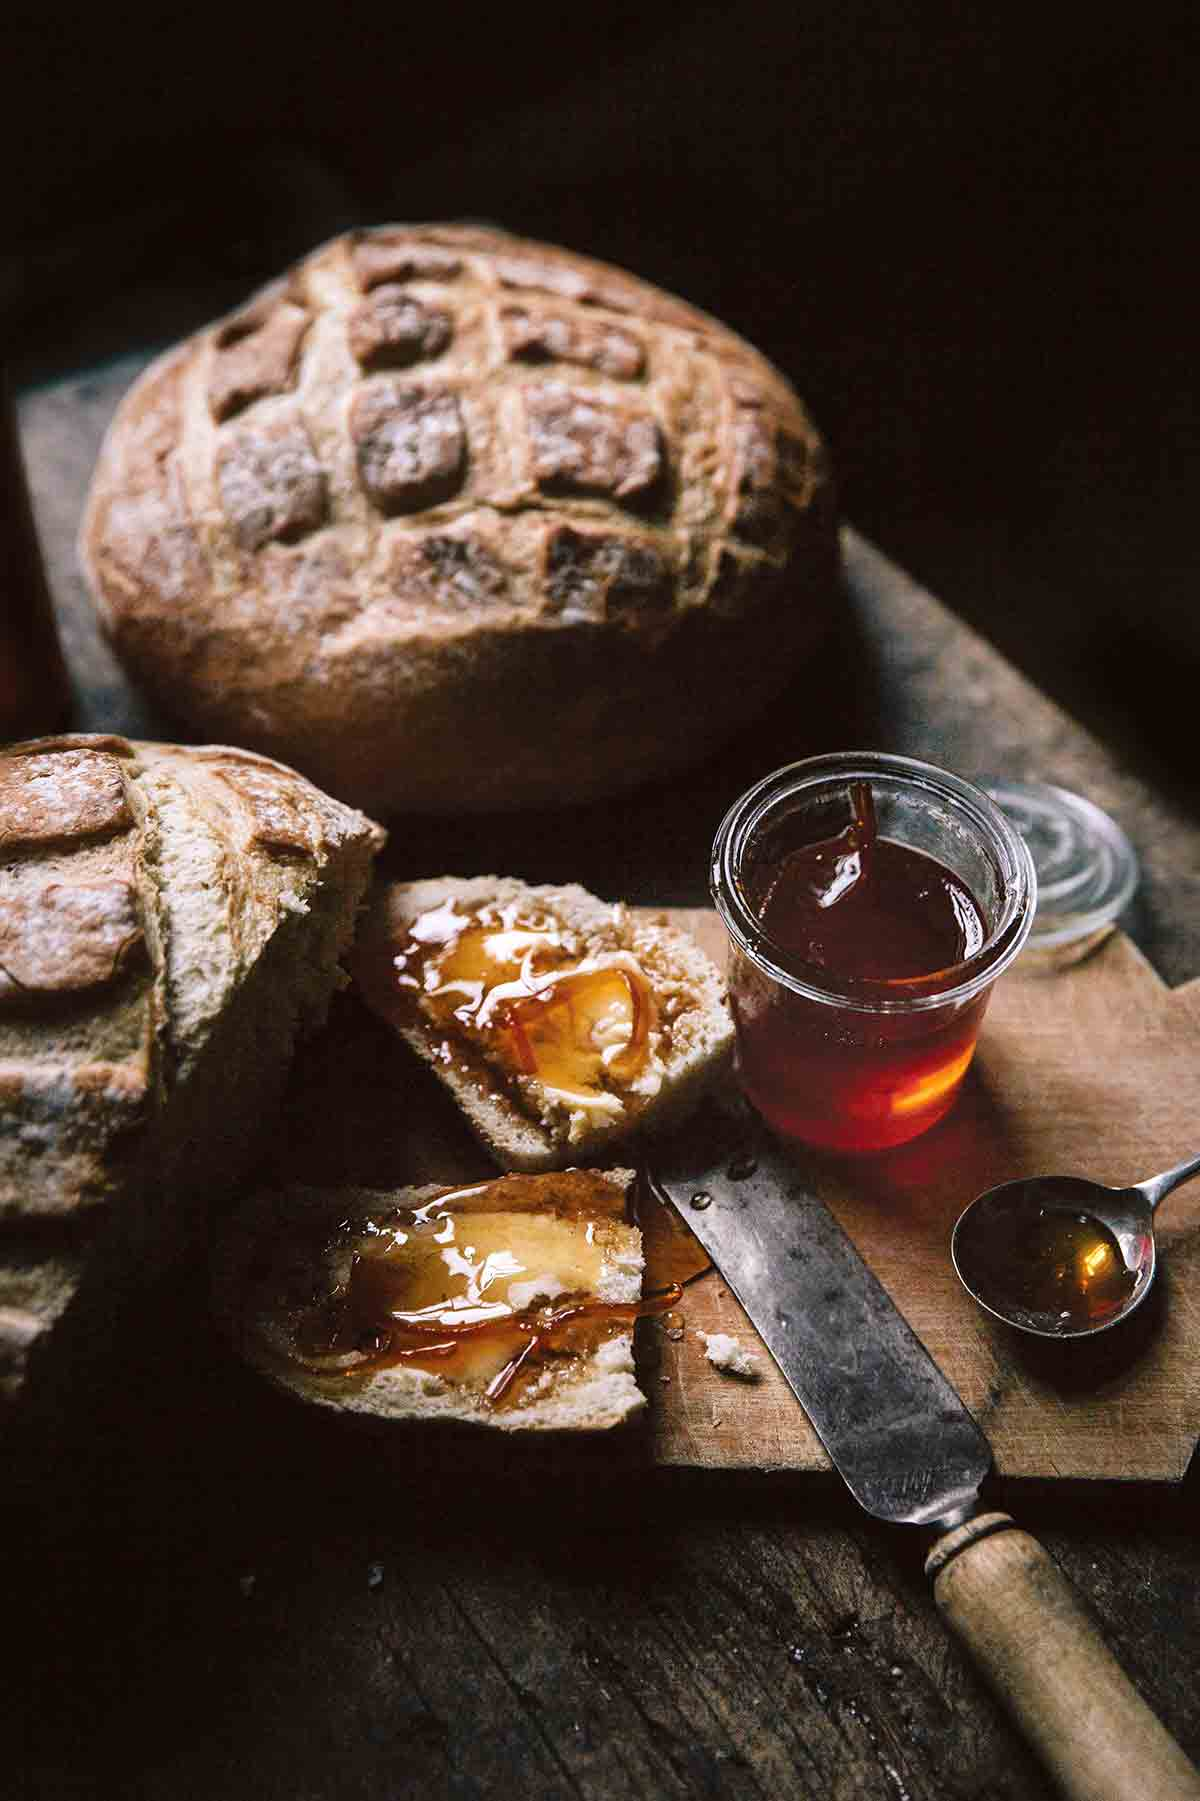 Two loaves of artisan bread and a jar of Campari citrus marmalade, with a slice of bread smeared with the marmalade on a wooden cutting board.